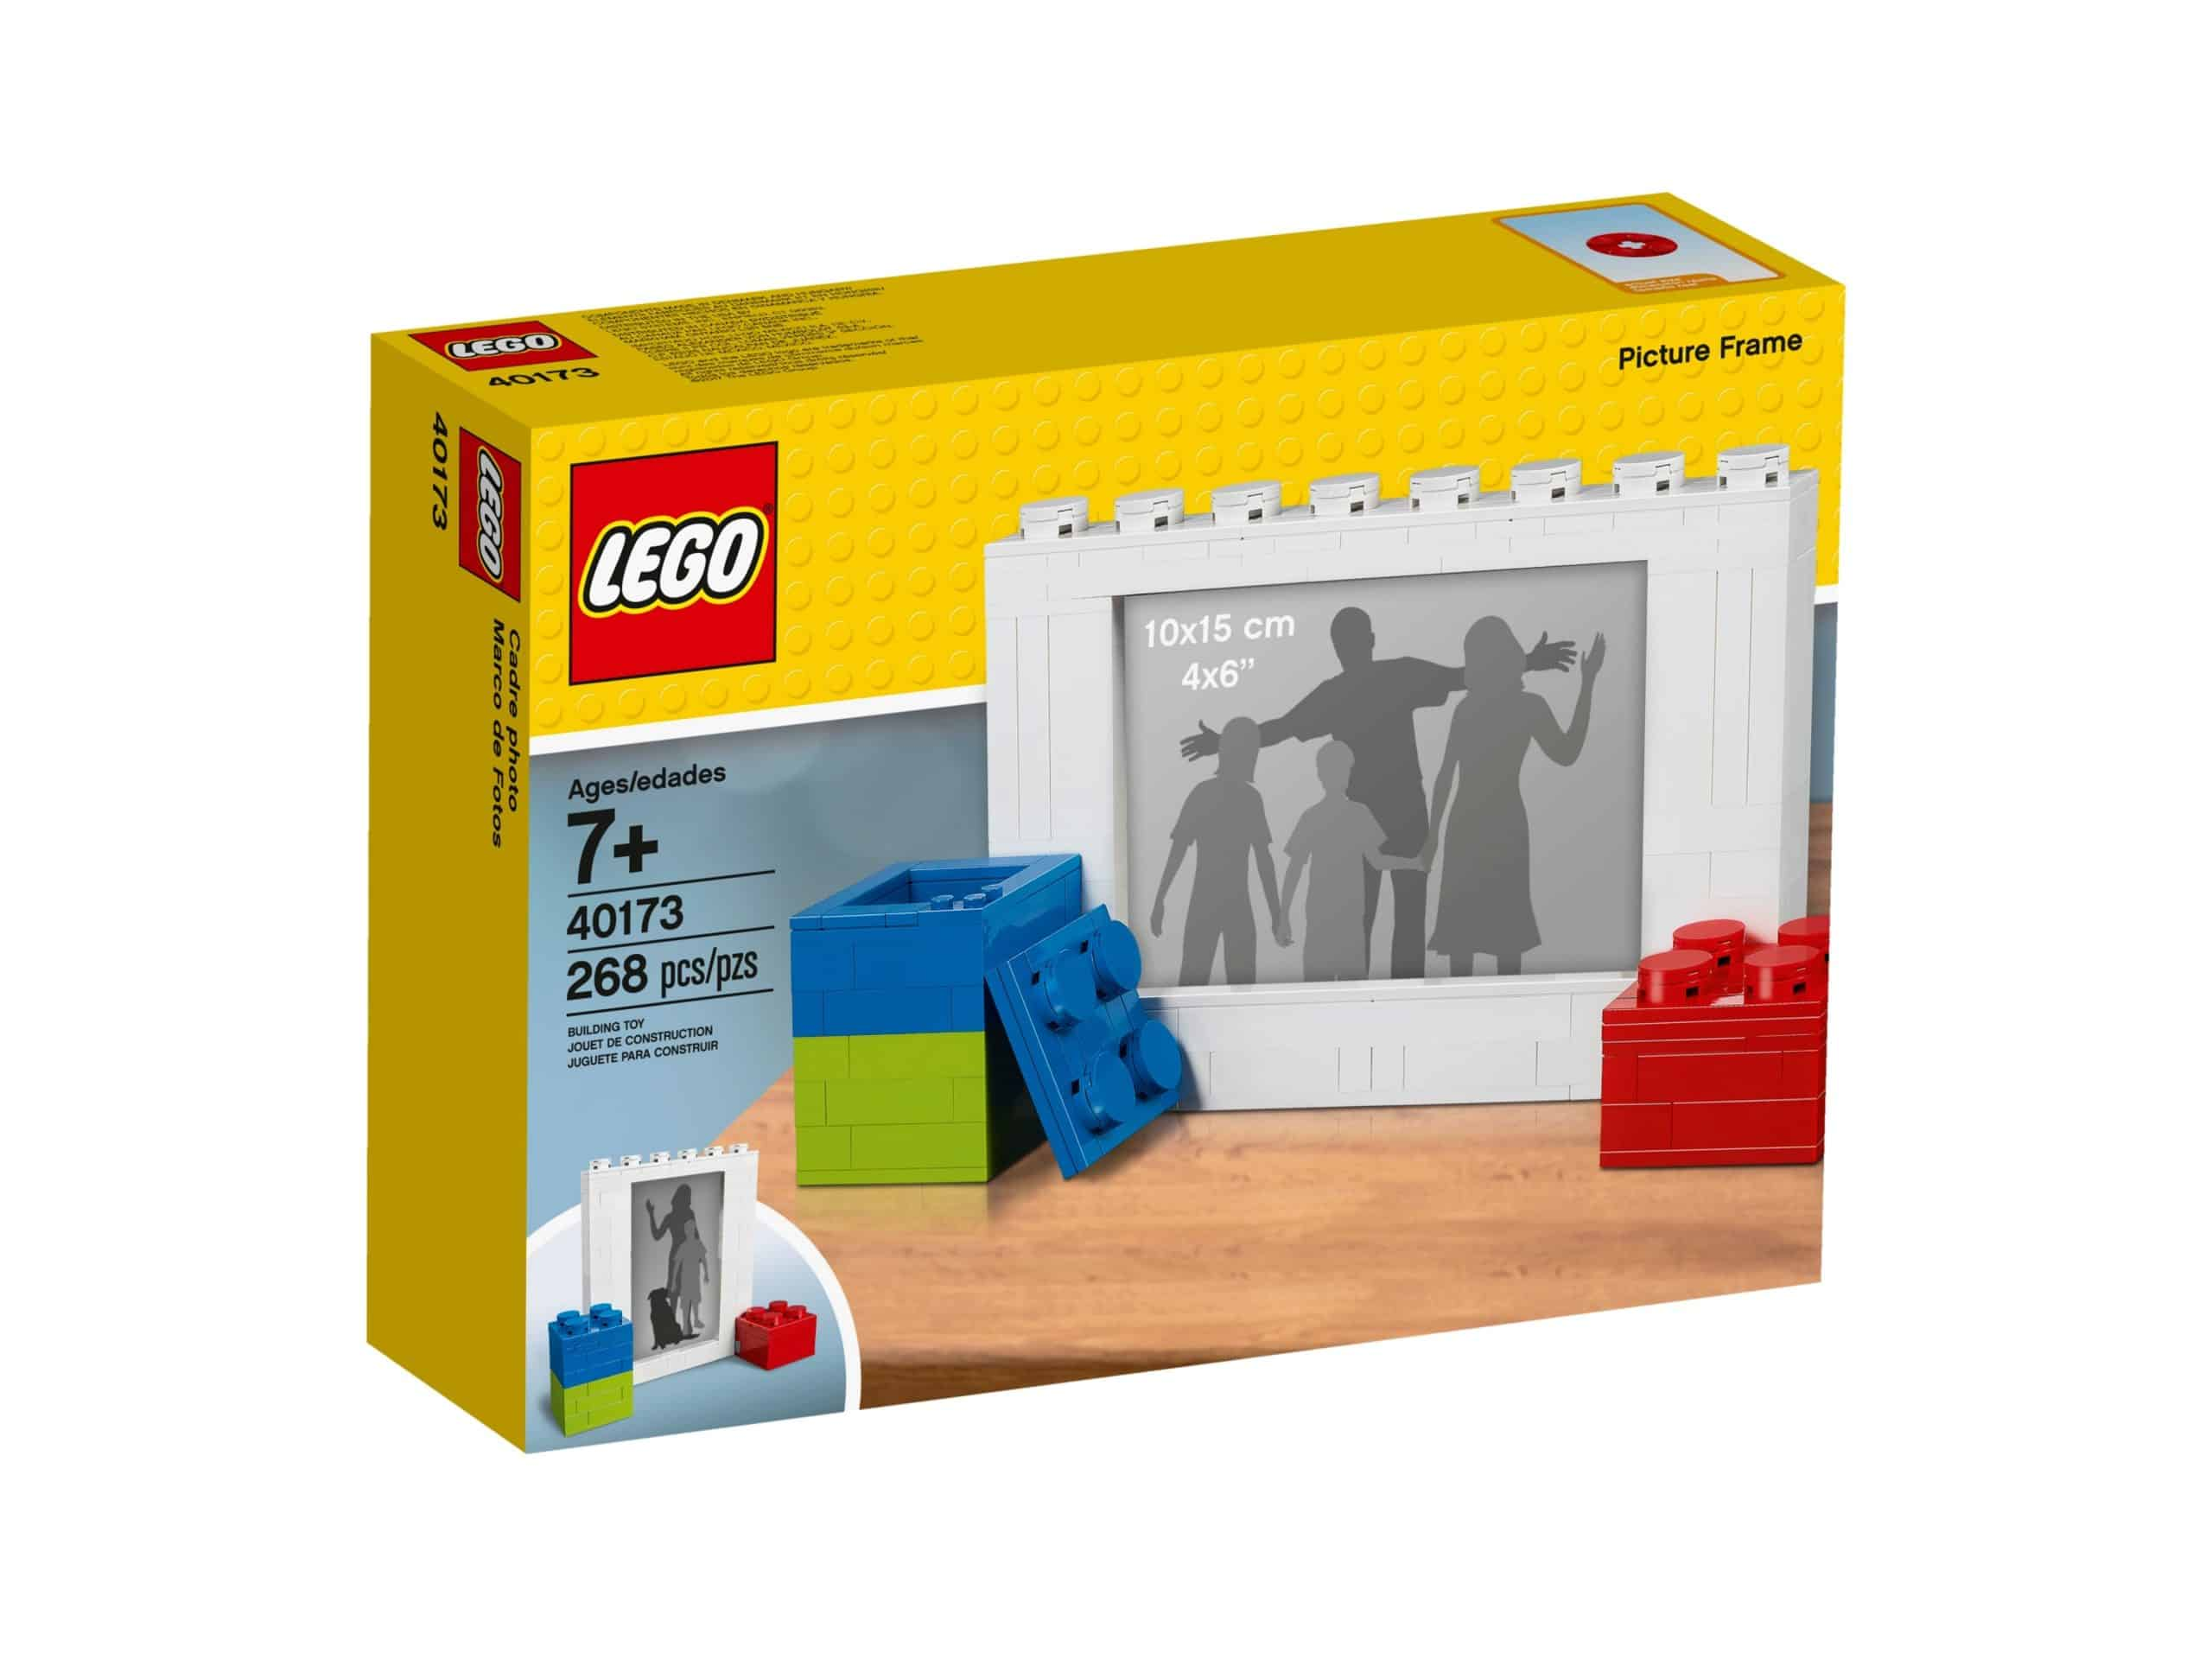 lego 40173 iconic picture frame scaled